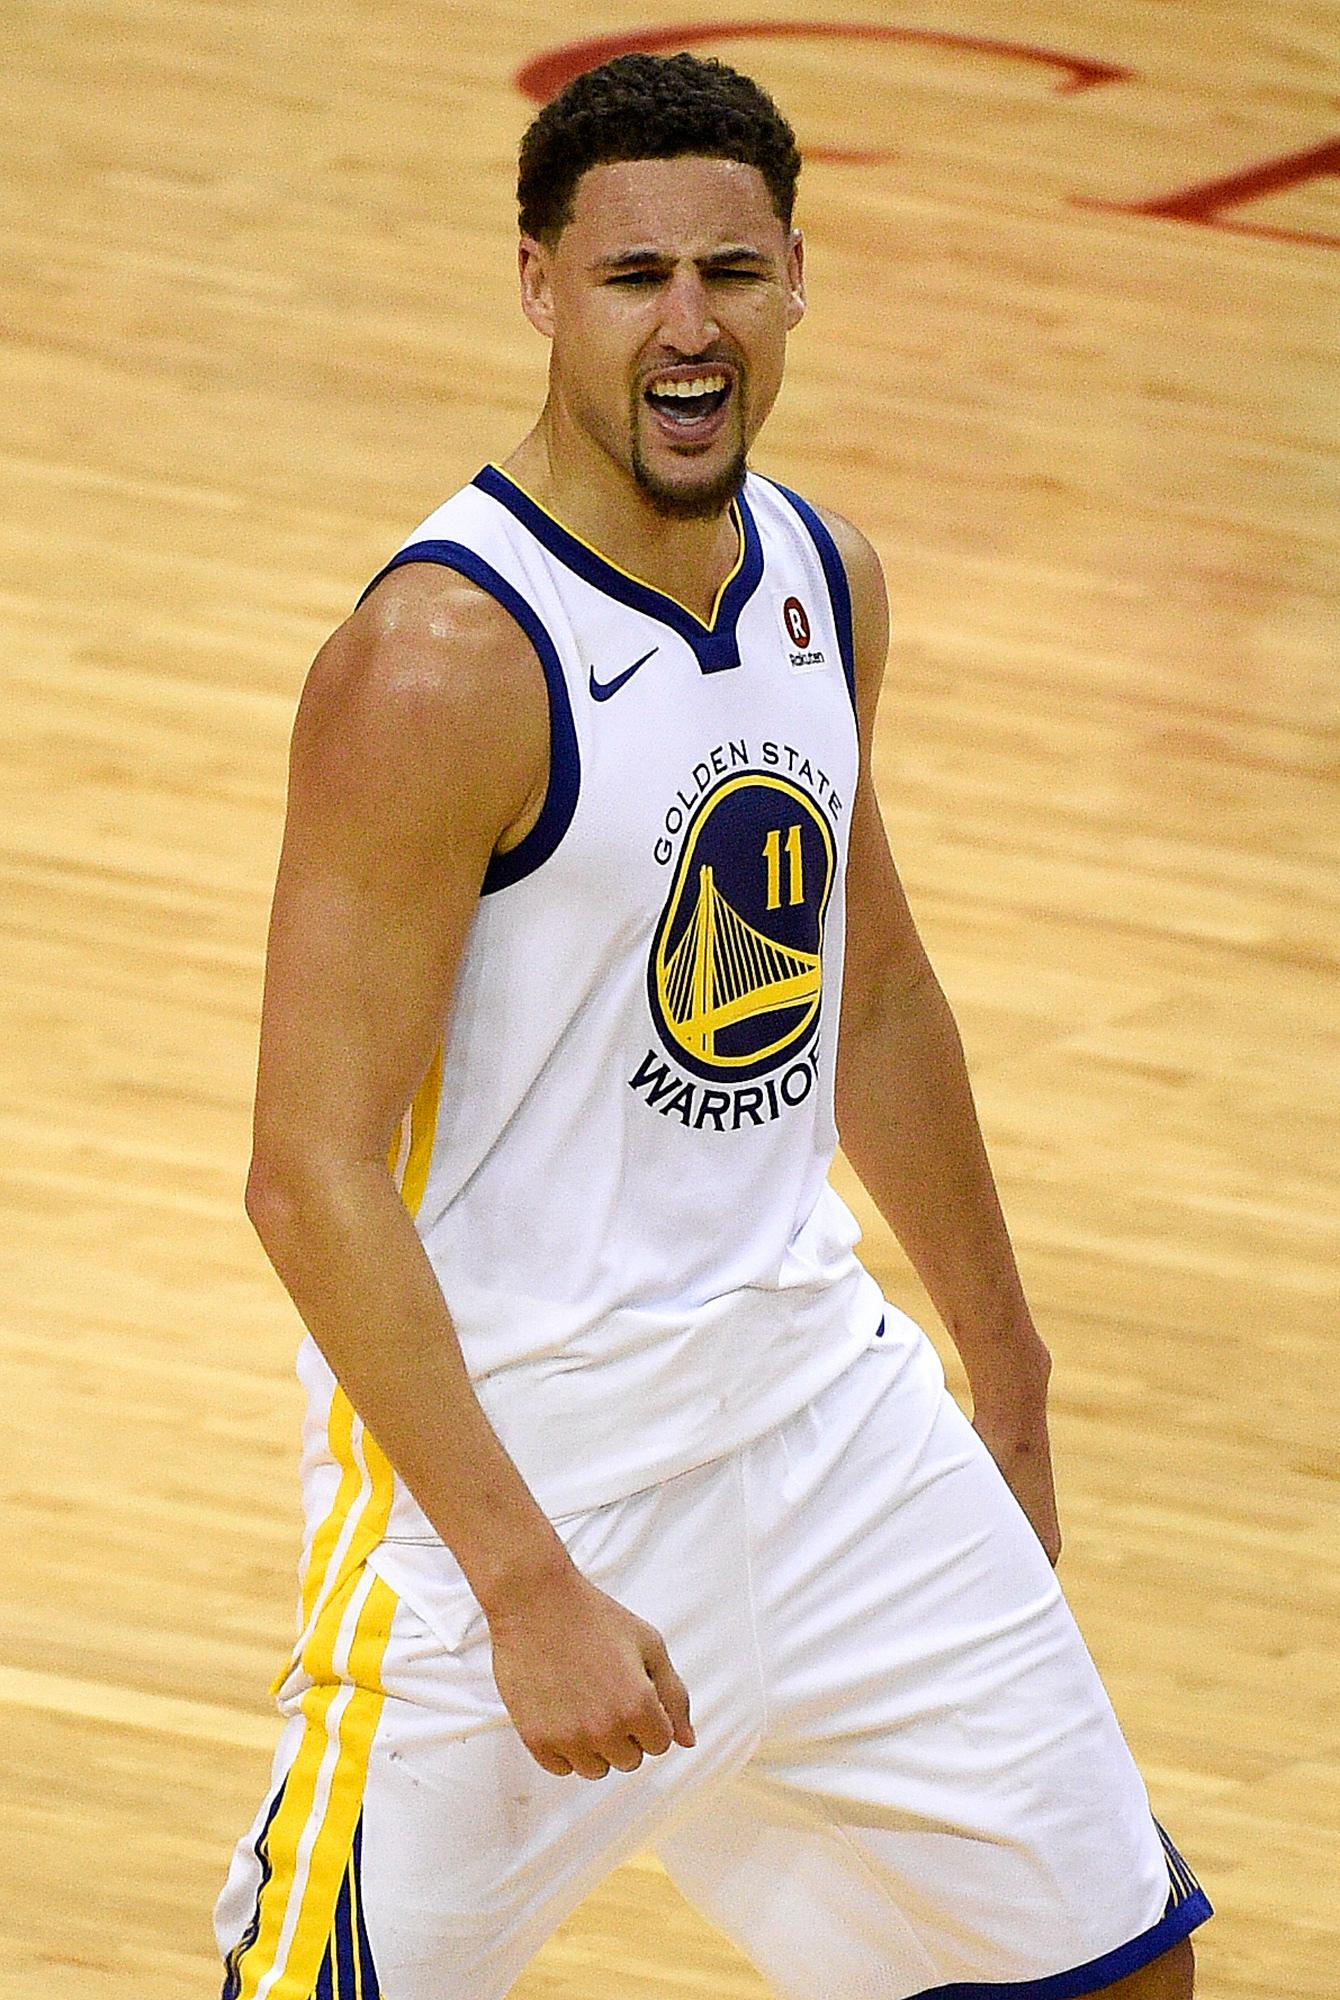 Golden State Warriors guard Klay Thompson reacts after a 3-pointer in the second half of Game 1 of the NBA Western Conference basketball Finals against the Houston Rockets, Monday, May 14, 2018, in Houston. (AP Photo/Eric Christian Smith)